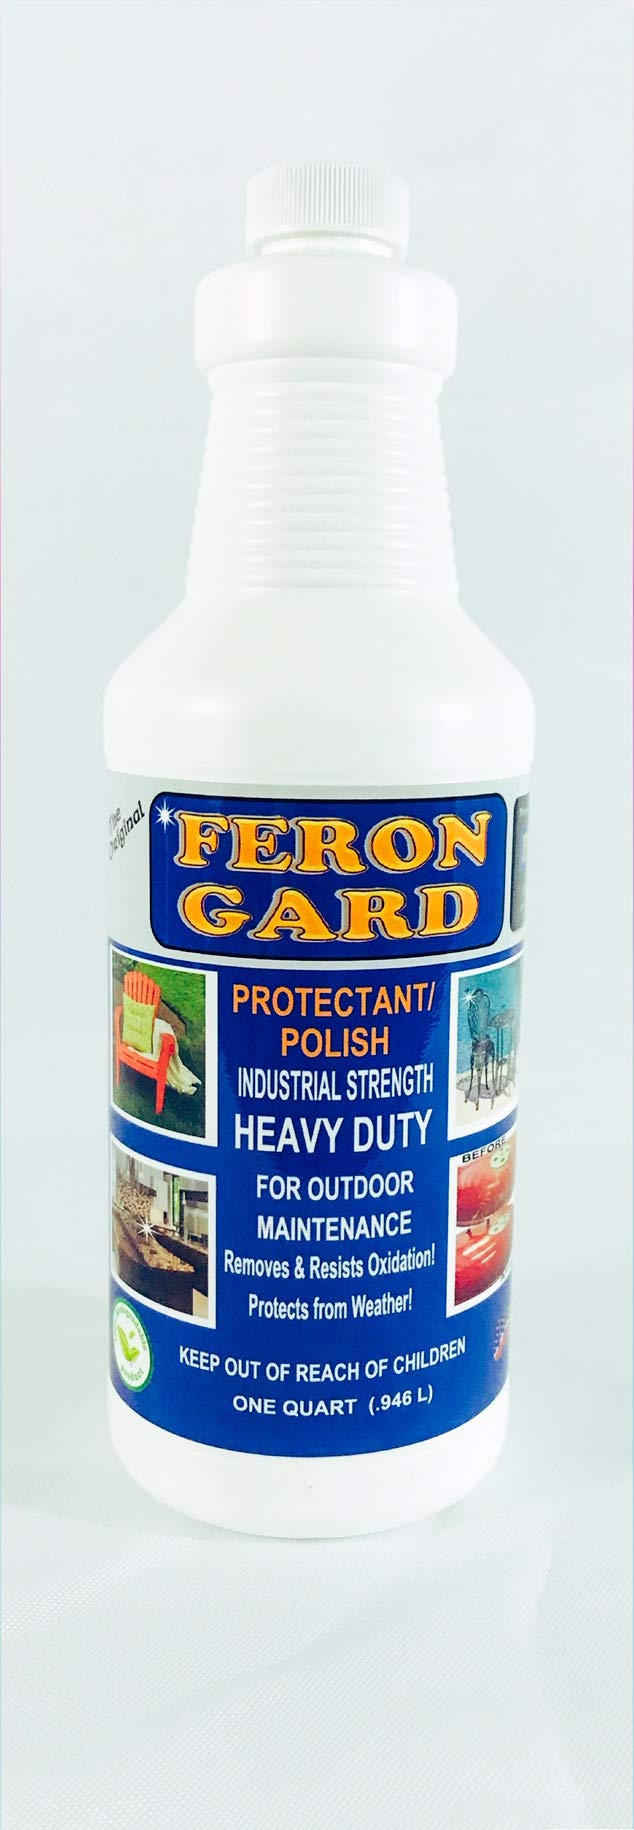 The Original Feron Gard for Outdoor Patio Furniture Maintenance Enhancer and Protectant Against Weather Polish Protectant Heavy Duty Industrial Strength and Surfaces